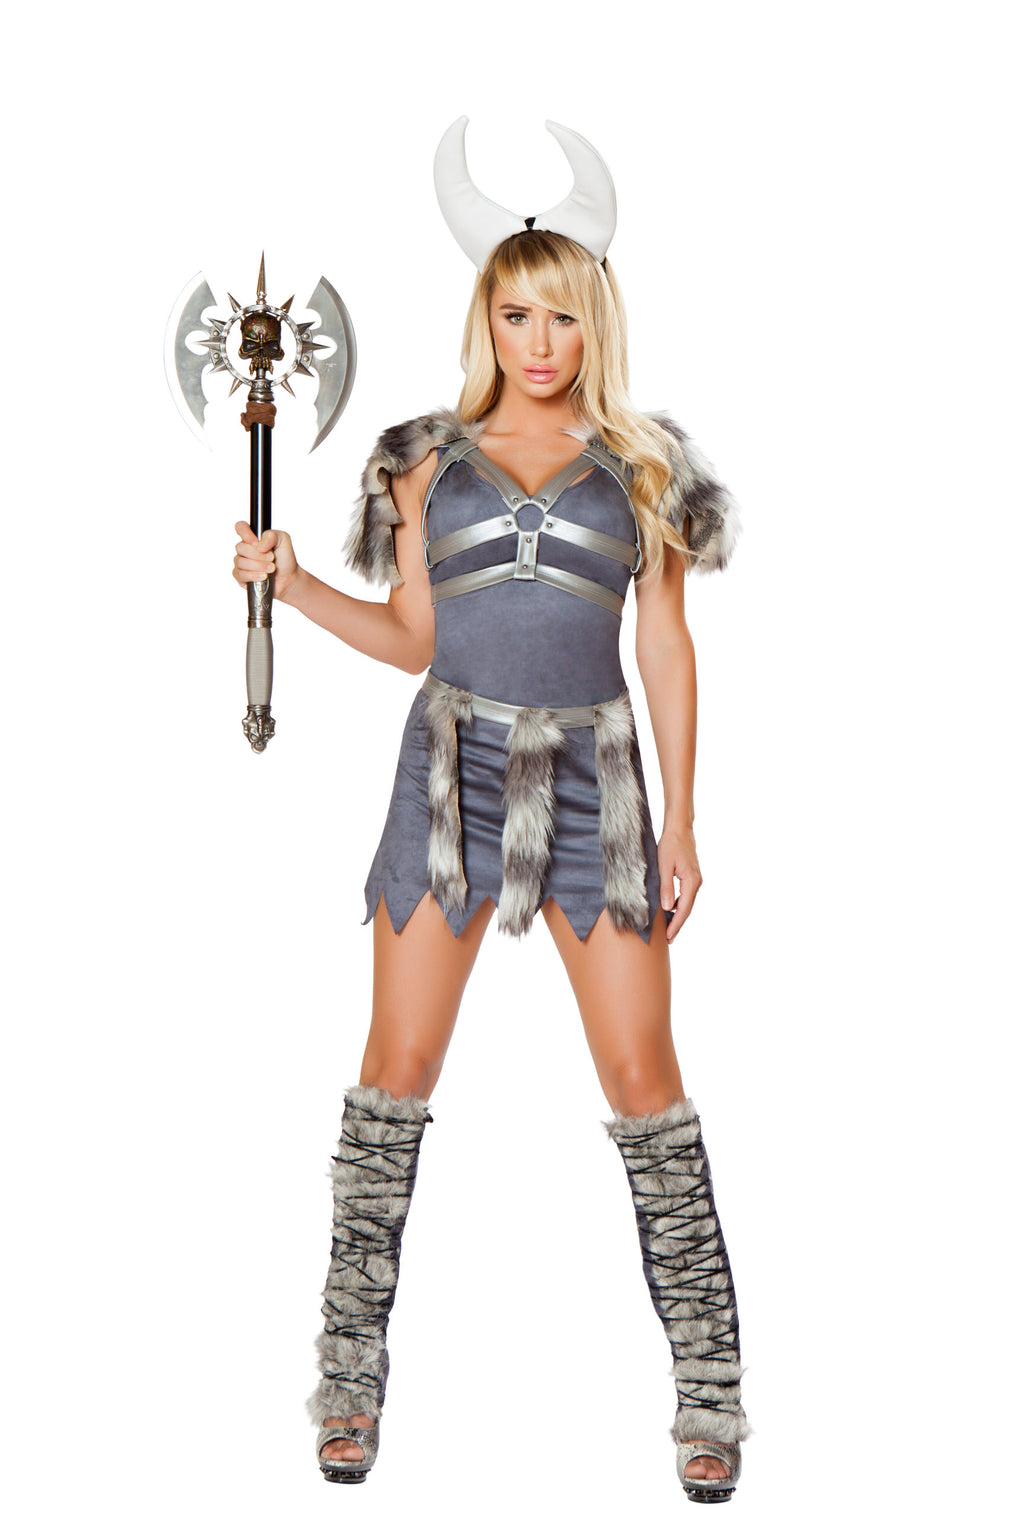 4-Piece-Viking-Dress-&-Accessories-Party-Costume